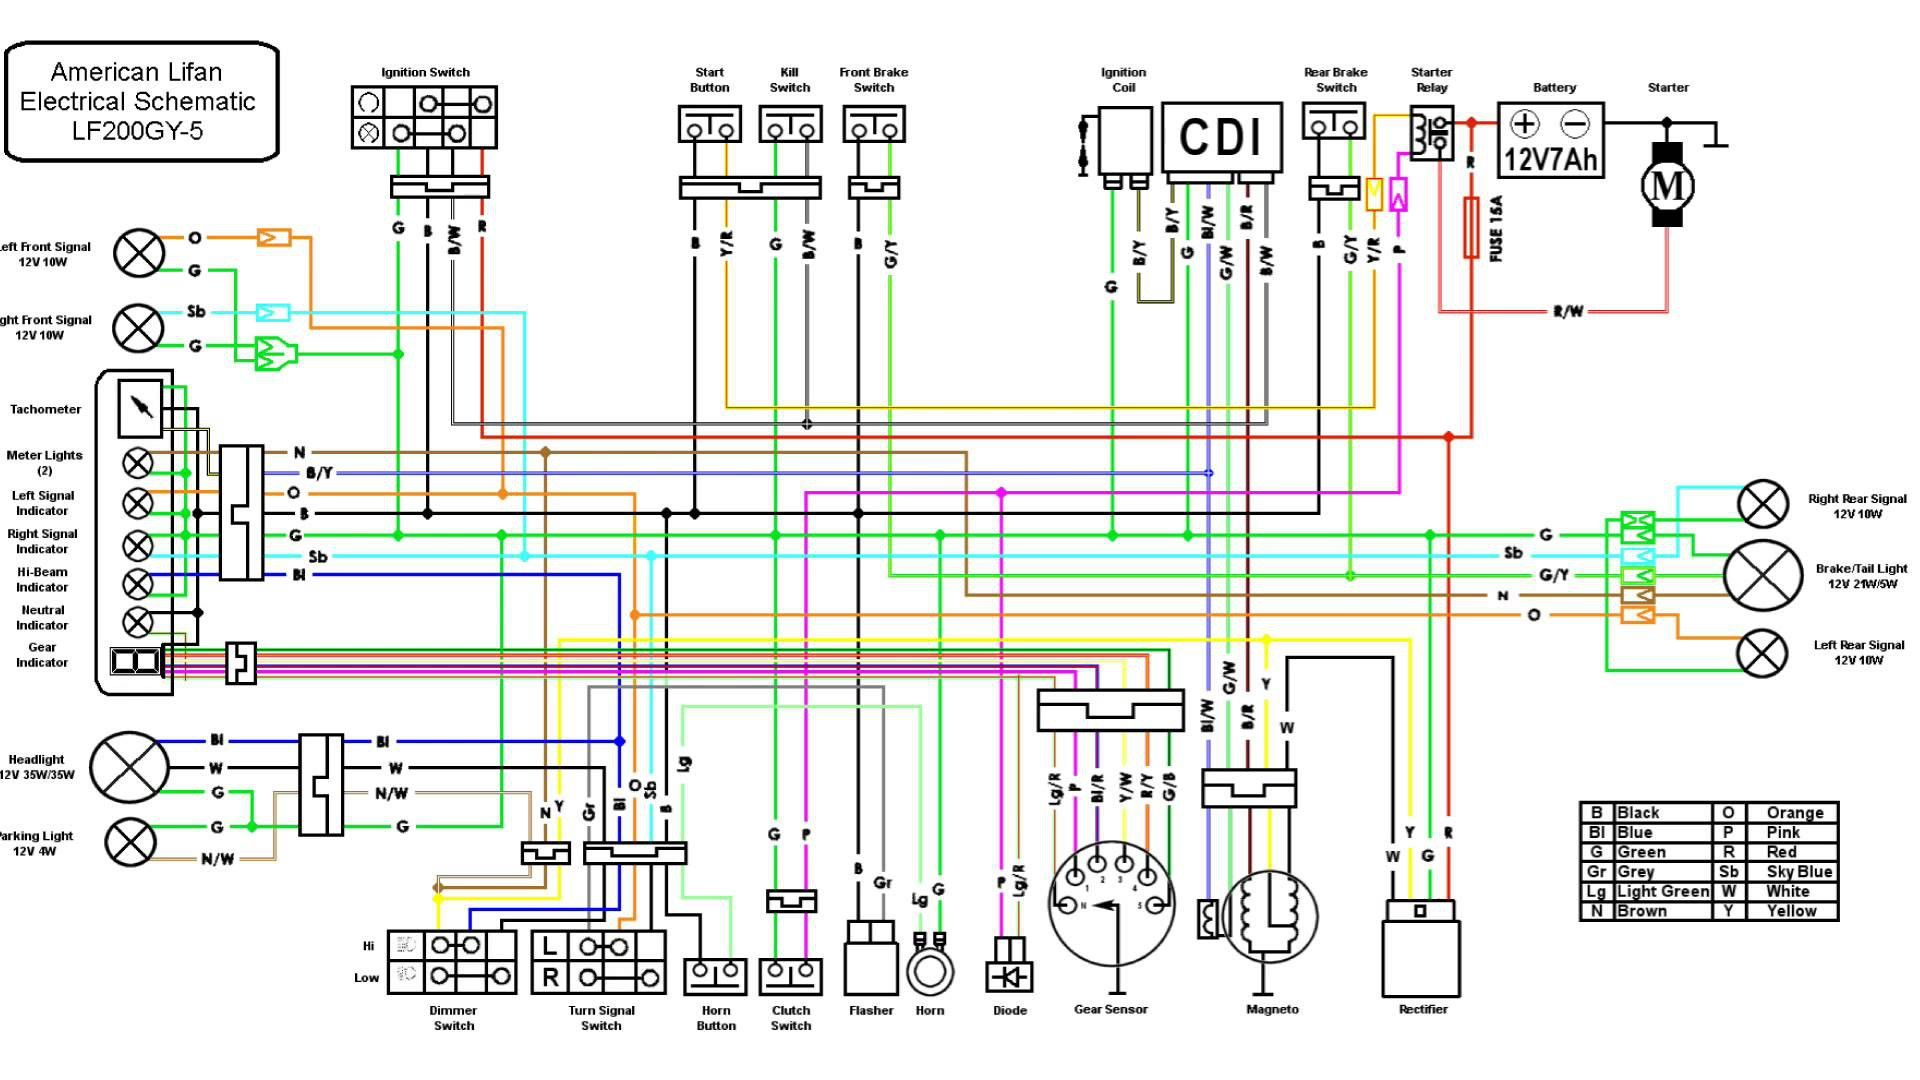 wiring harness diagram lovely 200cc lifan wiring diagram 95 wire harnes lifan wiring harness [ 1920 x 1080 Pixel ]